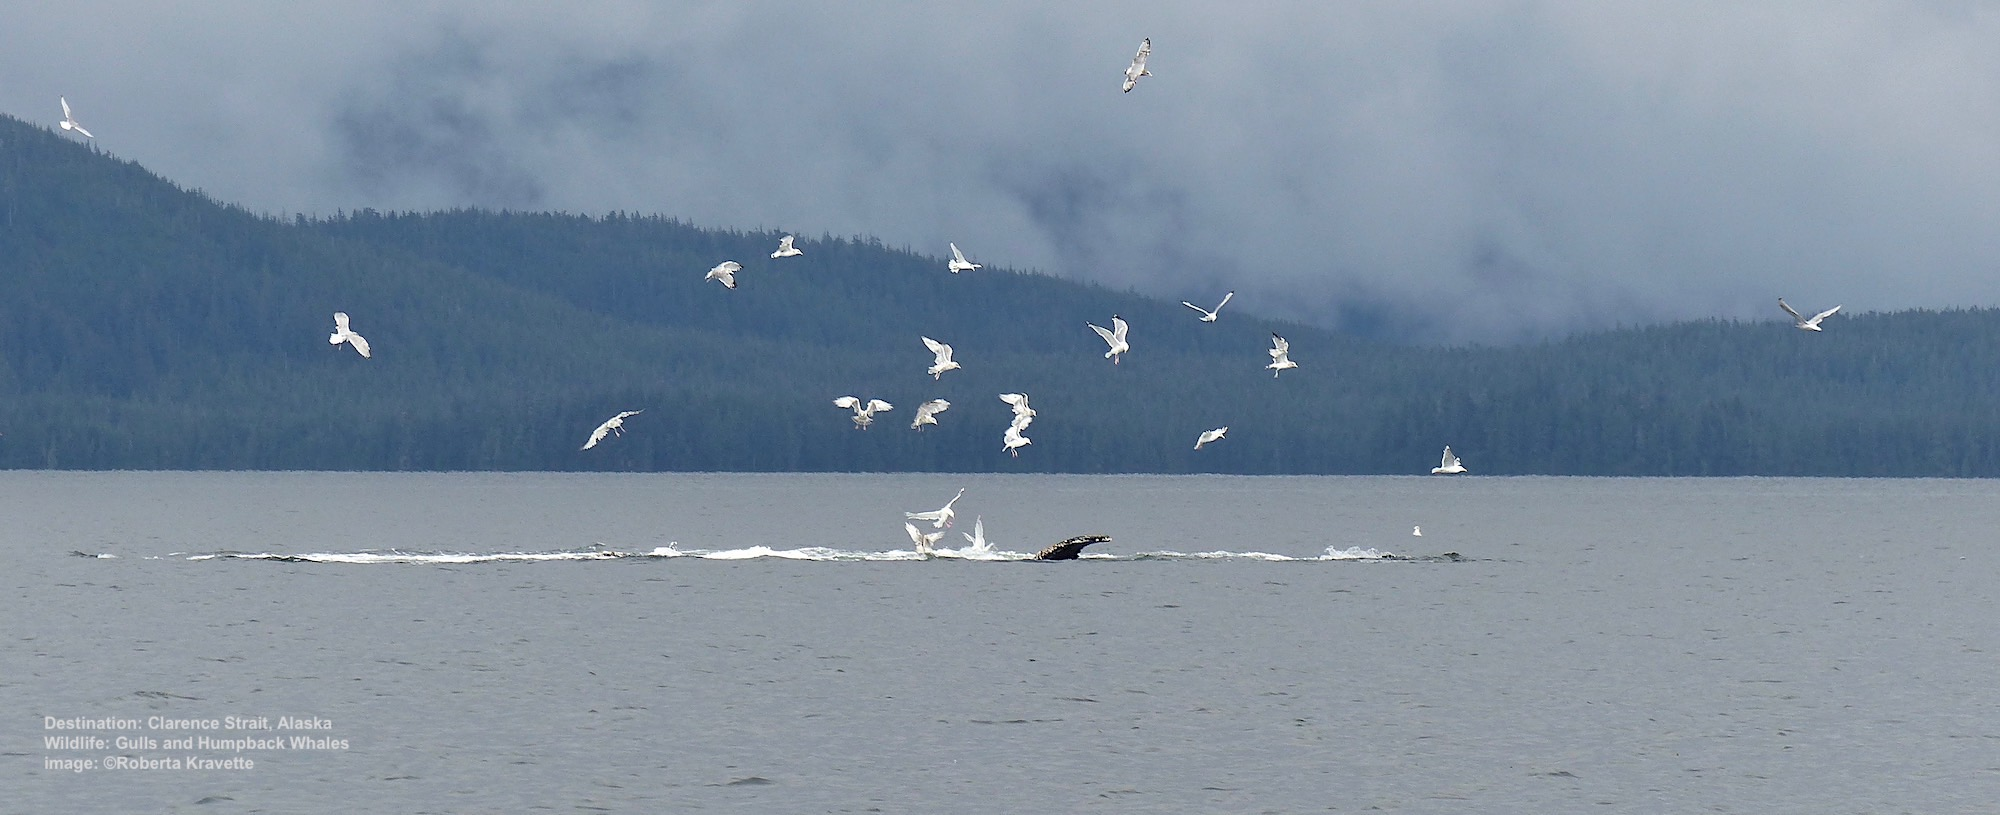 AS QUICKLY AS THEY APPEARED, THE WHALES WERE GONE LEAVING A MASS OF GULLS DIVING FOR LEFT-OVERS. IMAGE: ©ROBERTA KRAVETTE.